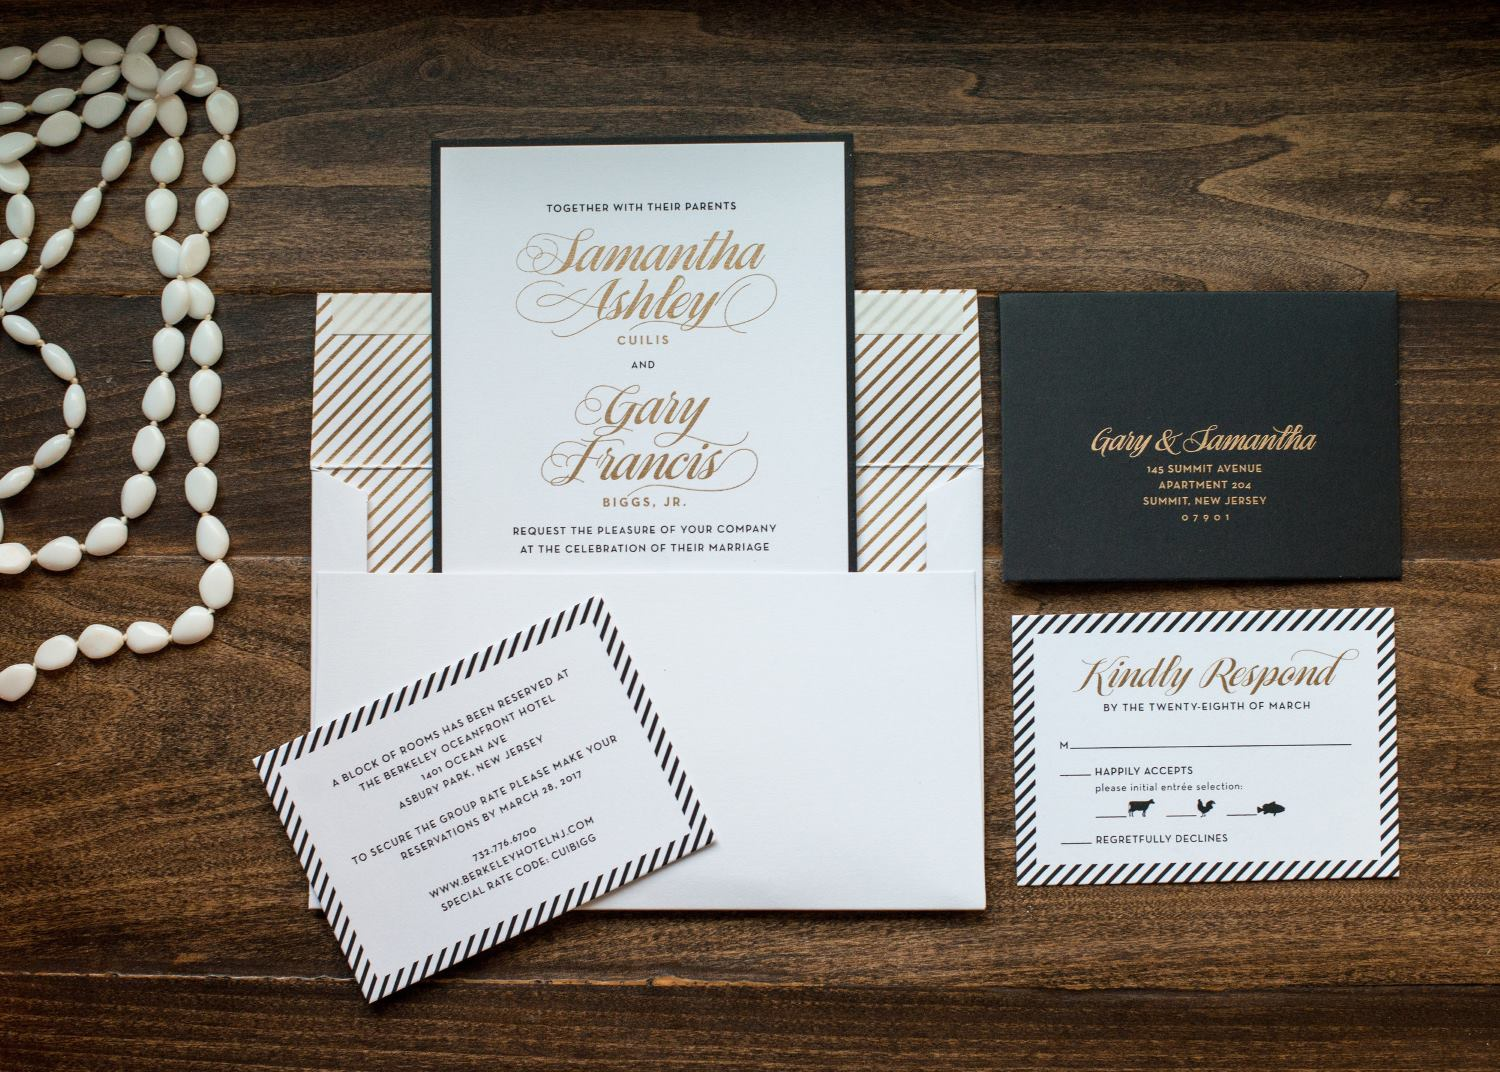 VINTAGE MONOGRAM WEDDING INVITATIONS PHOTO 2